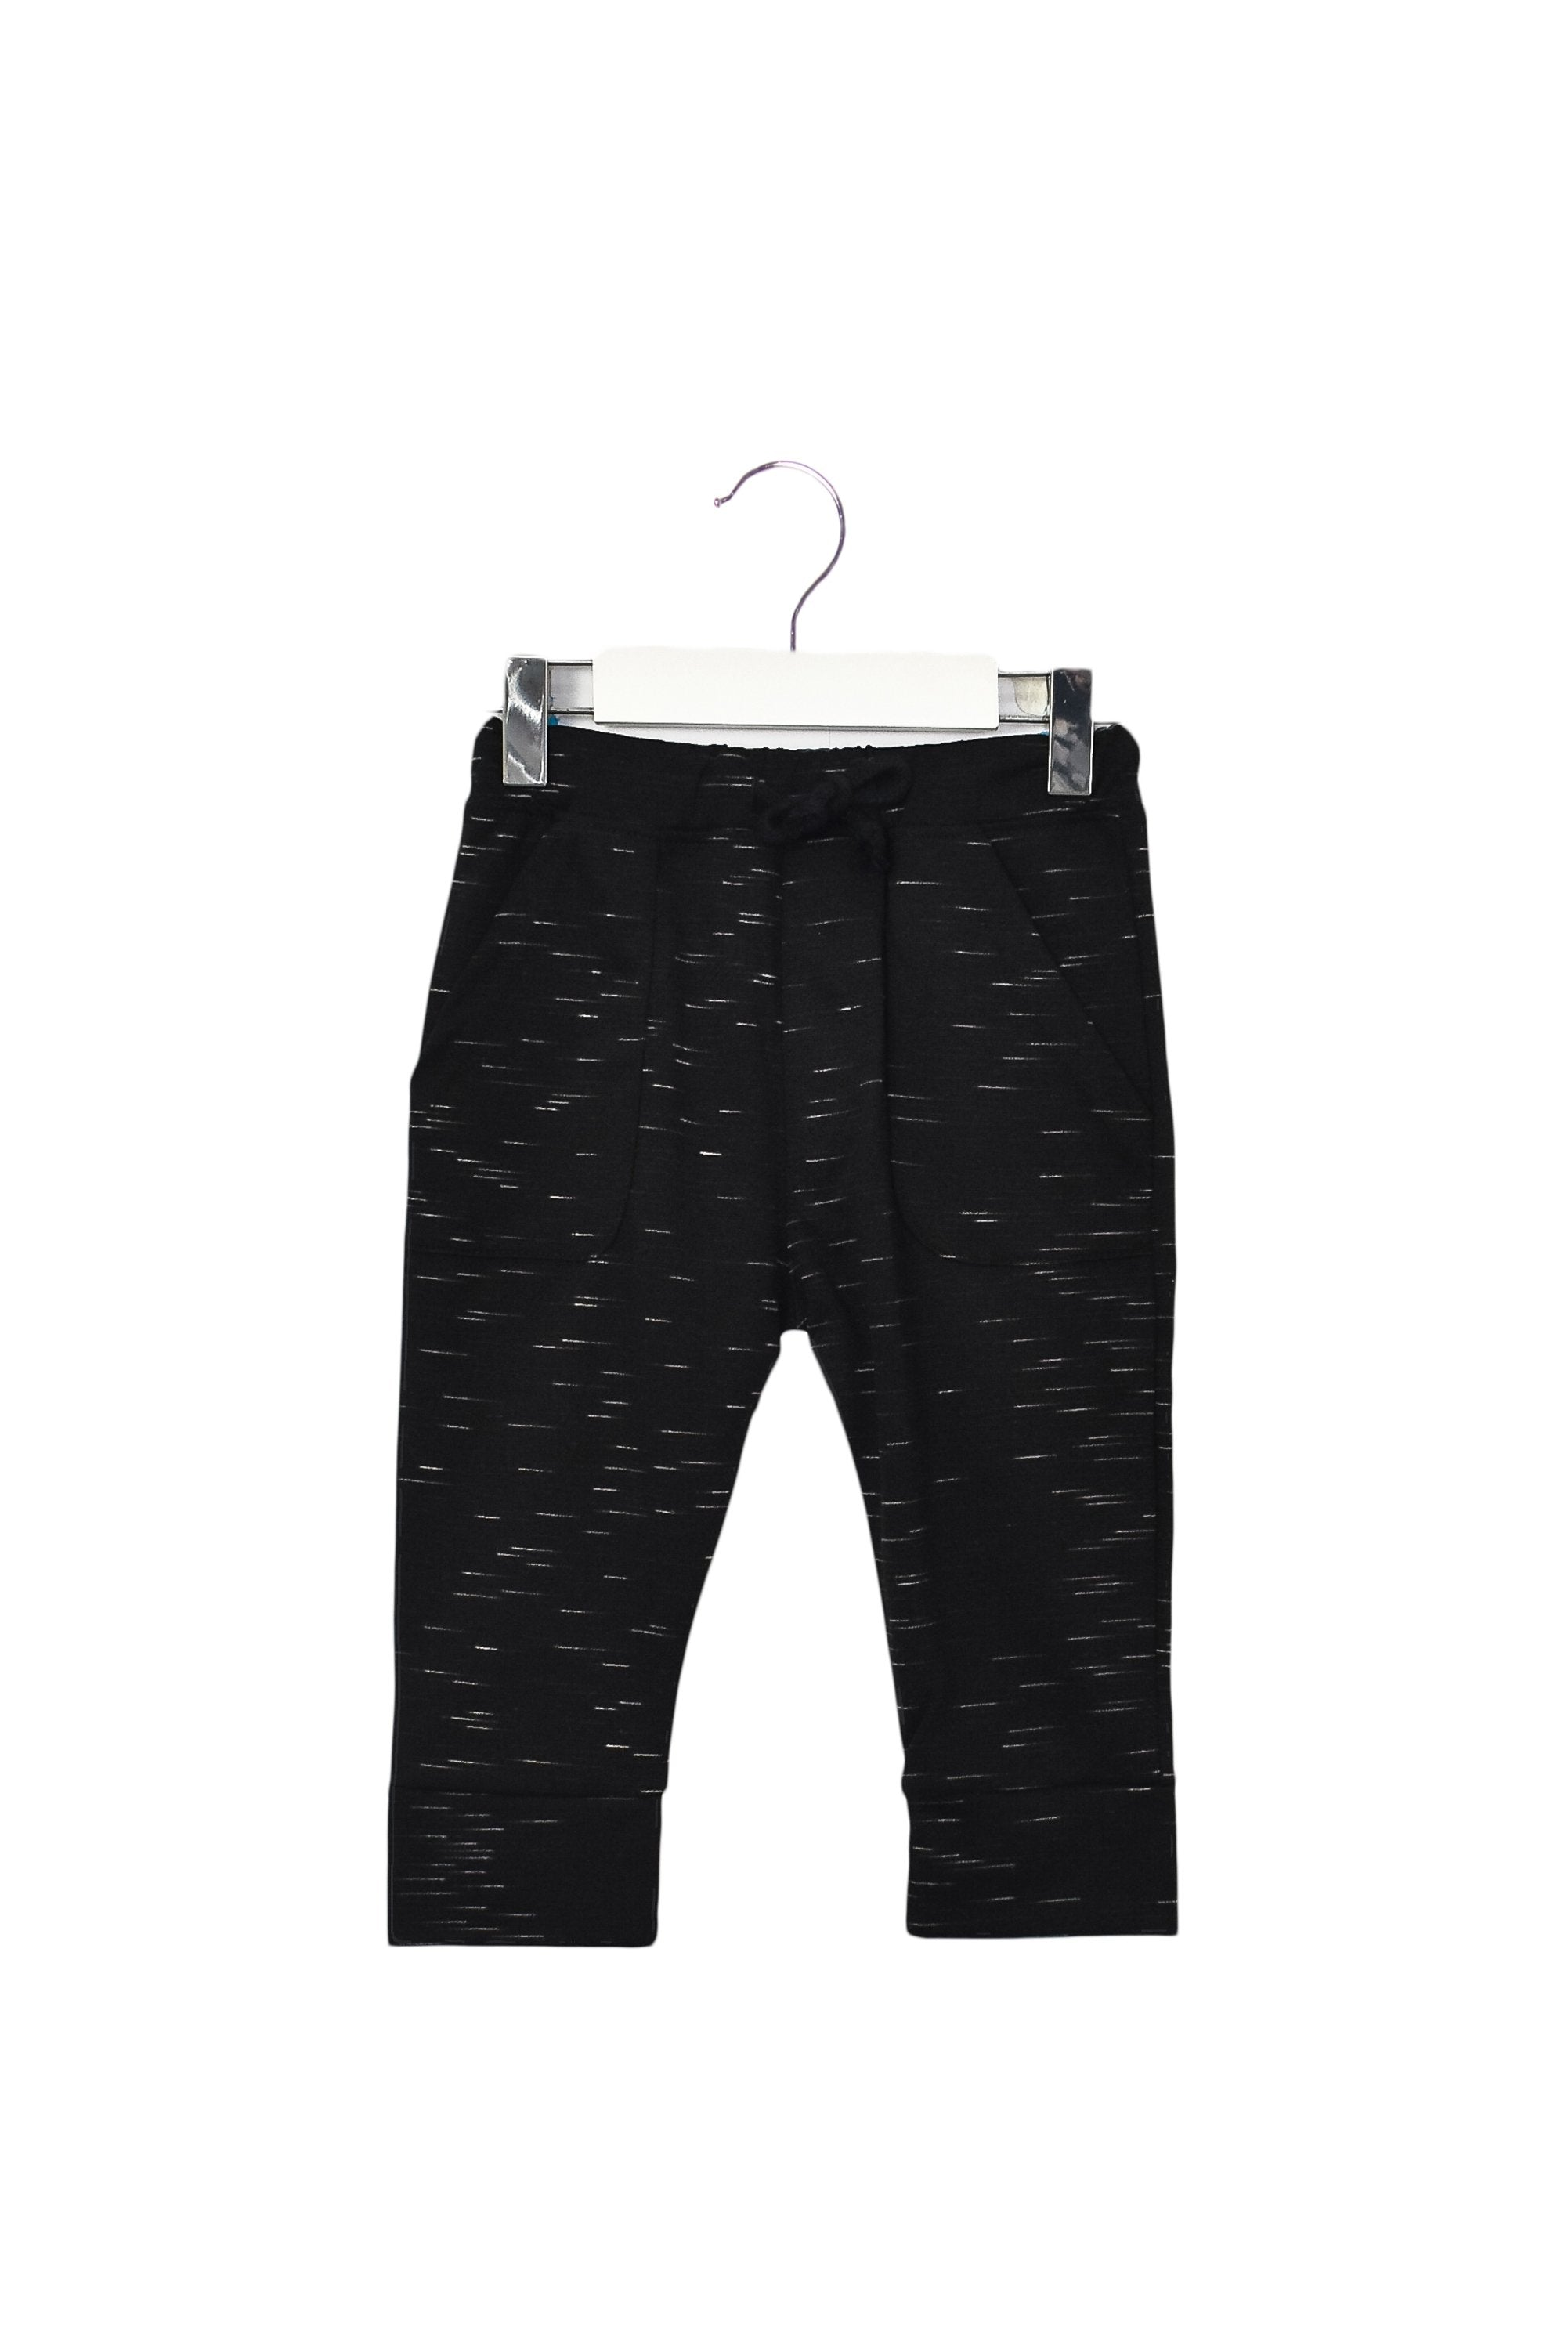 10033281 Milk on the Rocks Kids~Pants 2T-12 at Retykle